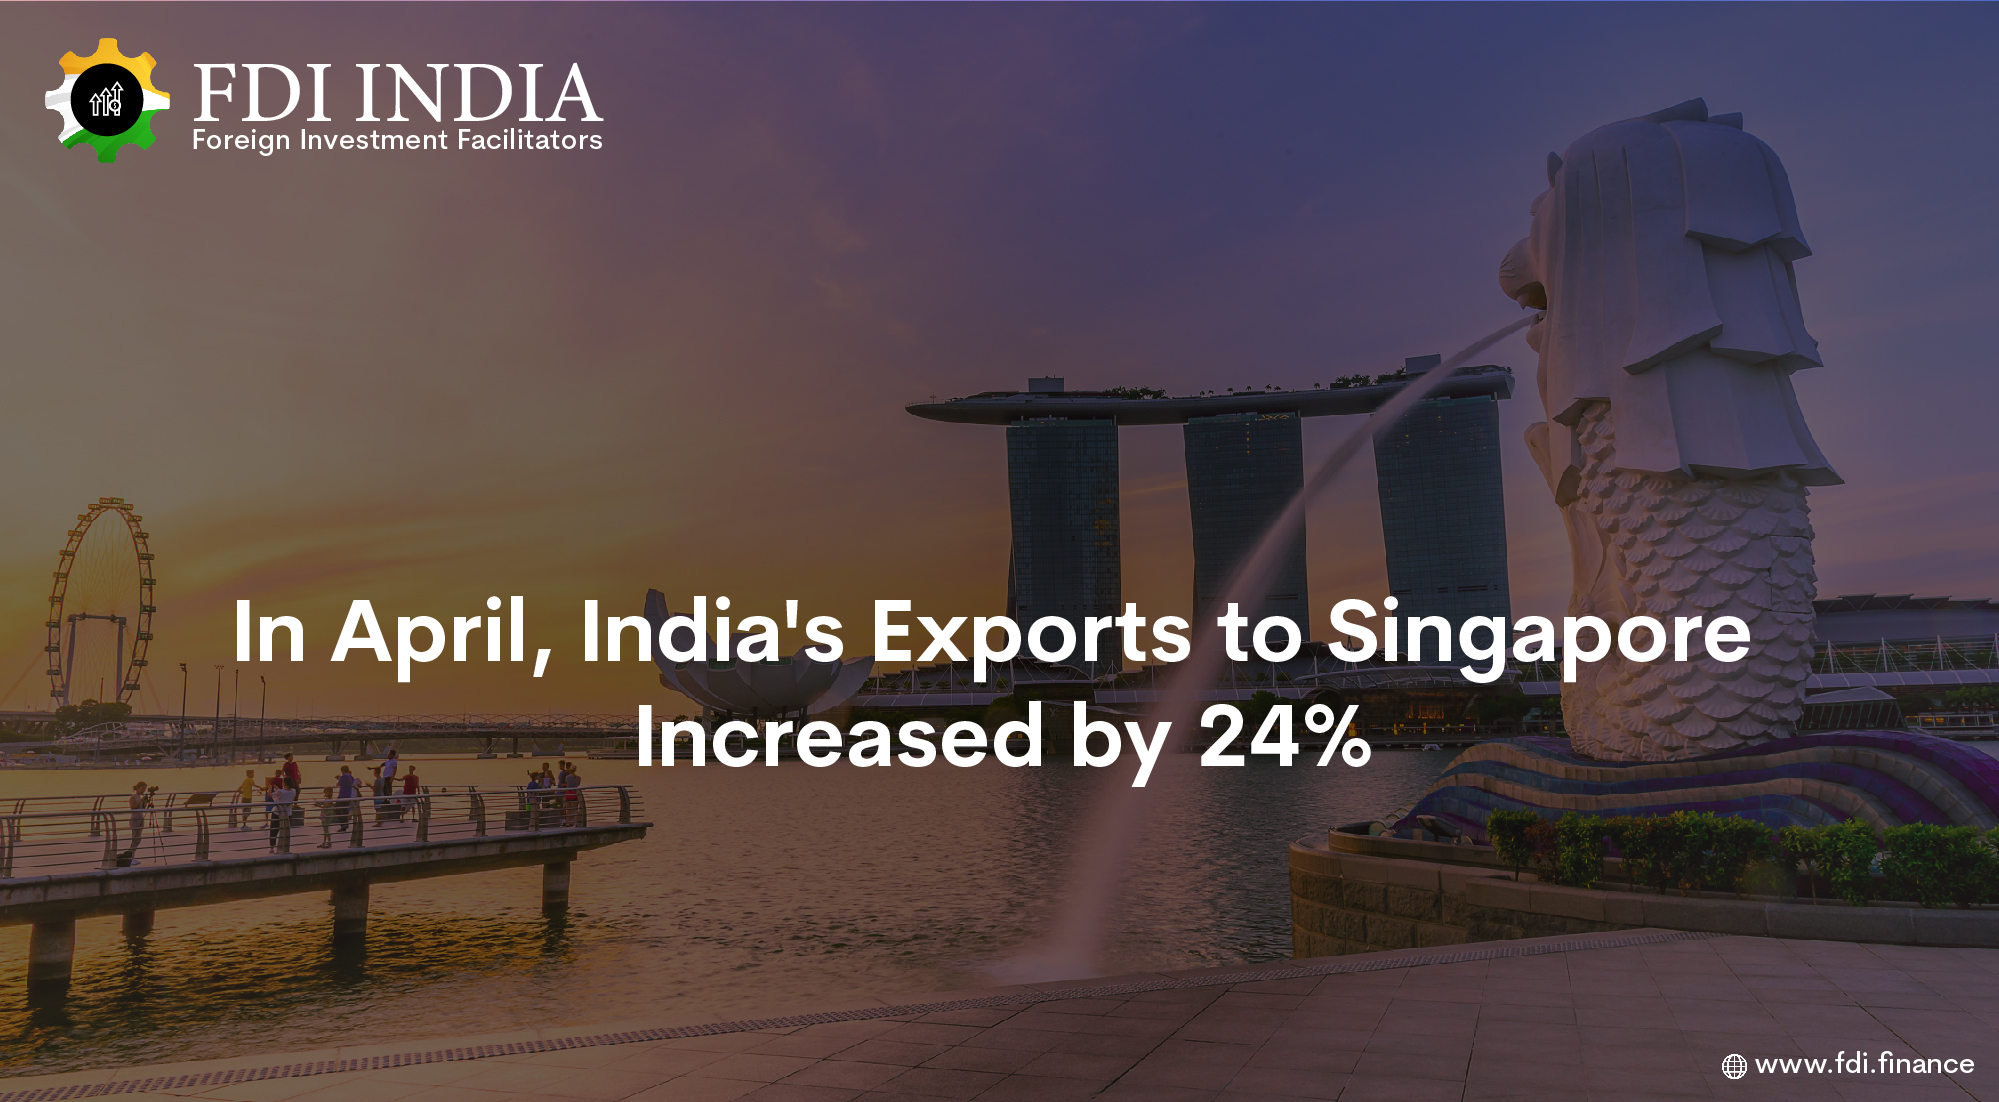 In April, India's Exports to Singapore Increased by 24%